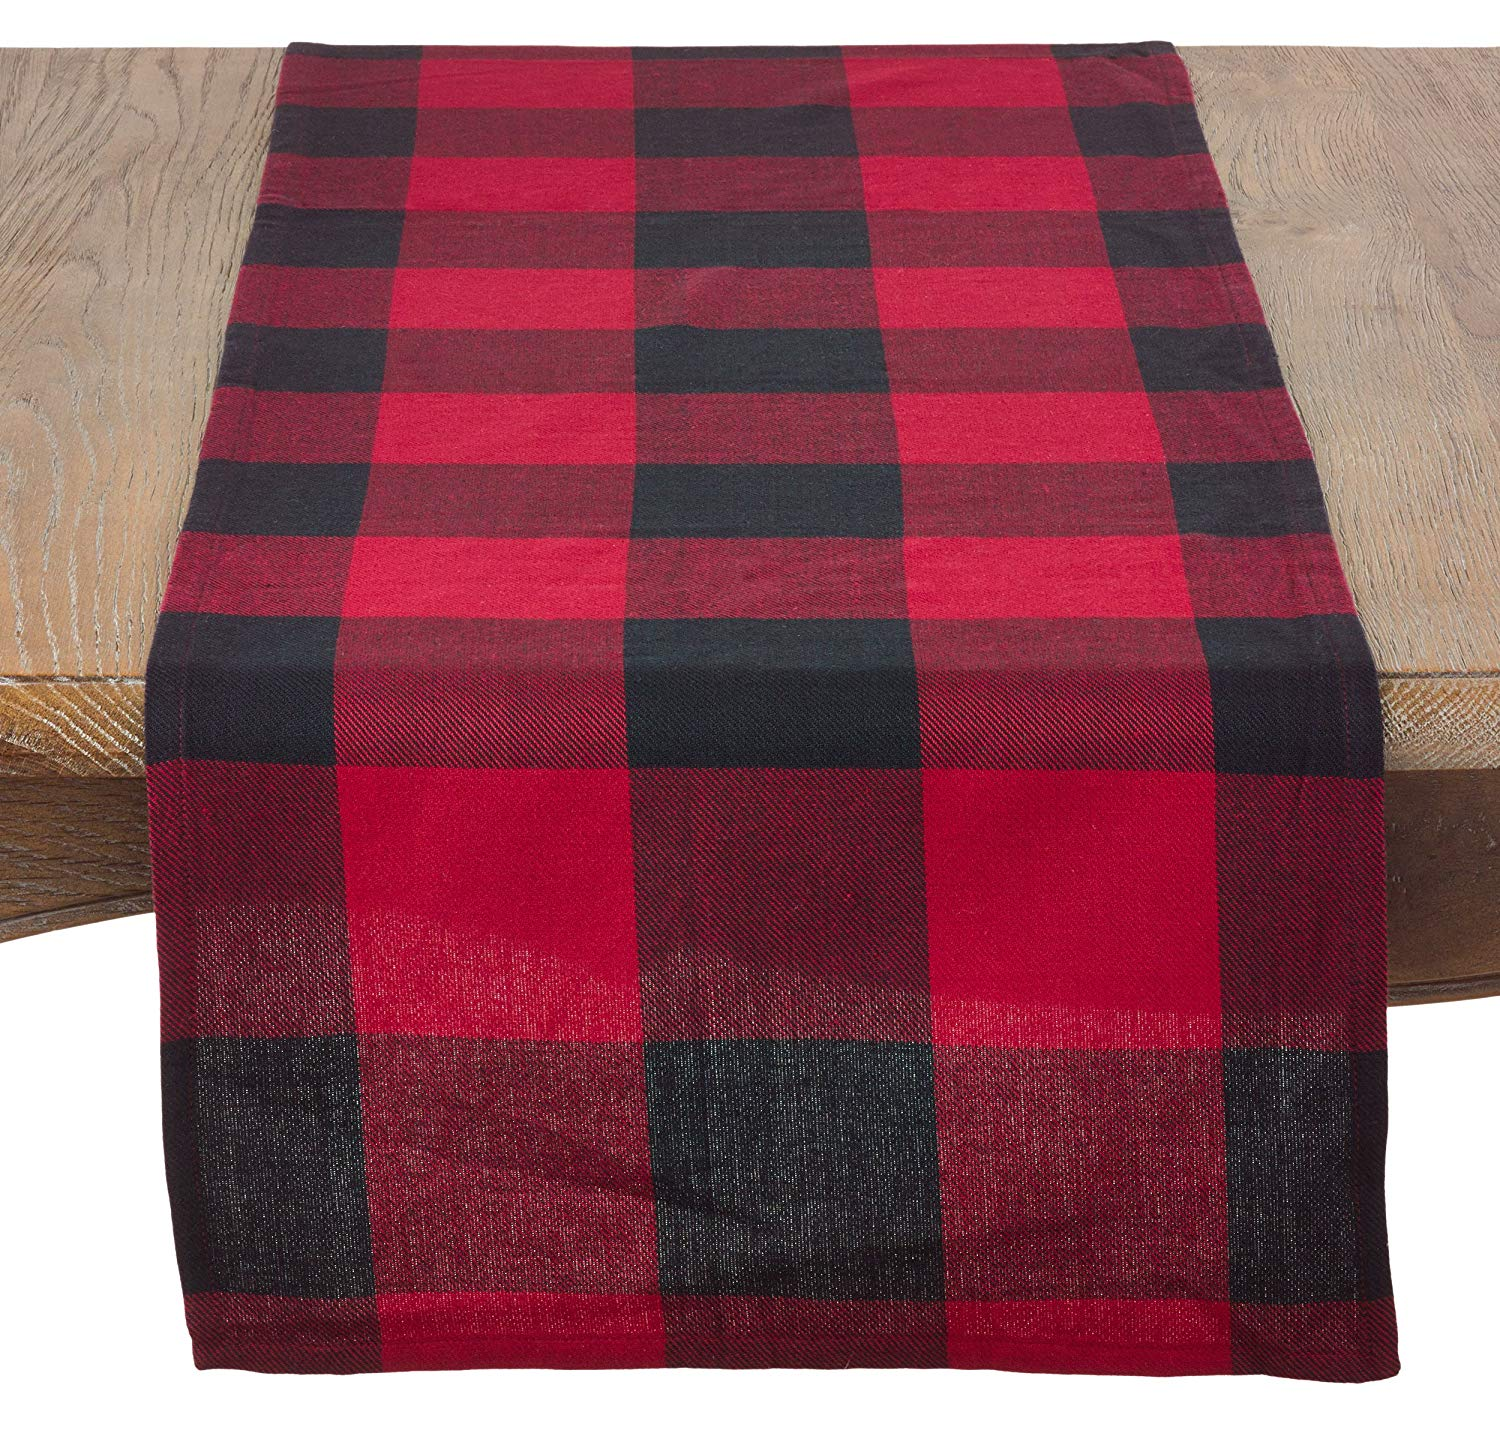 saro lifestyle buffalo plaid table runner blg accent your focus free pattern red home kitchen target nightstand large shade umbrella diy farmhouse tablecloths and placemats side